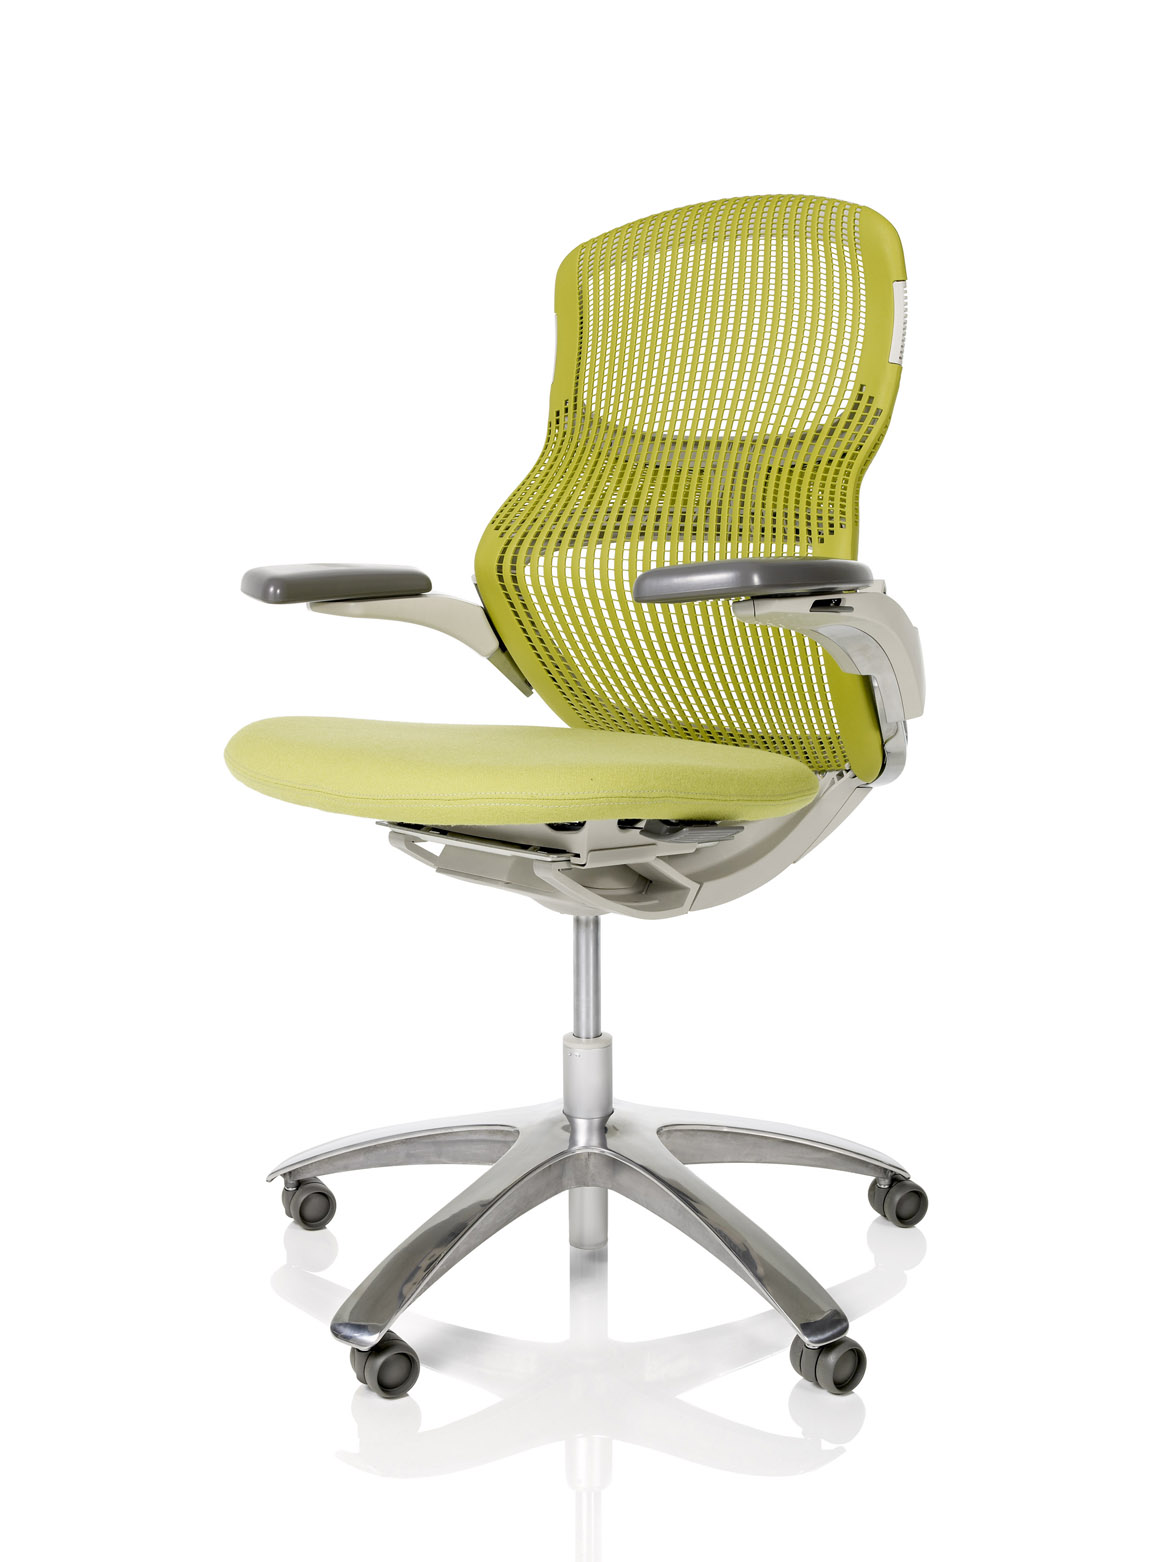 systems furniture of de pere wi details why it is important to  - the knoll generation chair  ergonomic office seating available throughsystems furniture of de pere